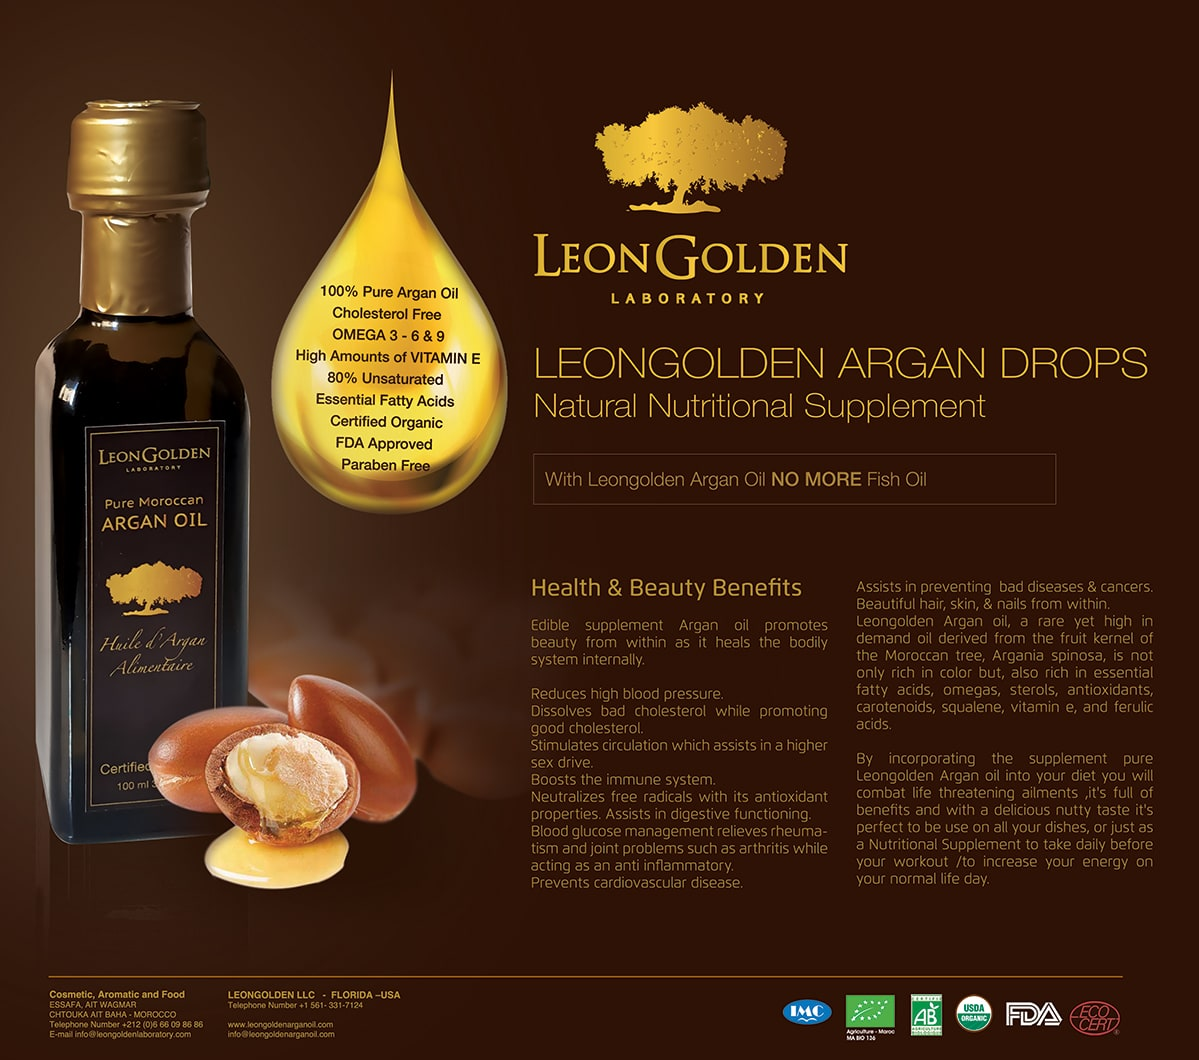 Poster-LeonGolden-culinary-pure-argan-oil